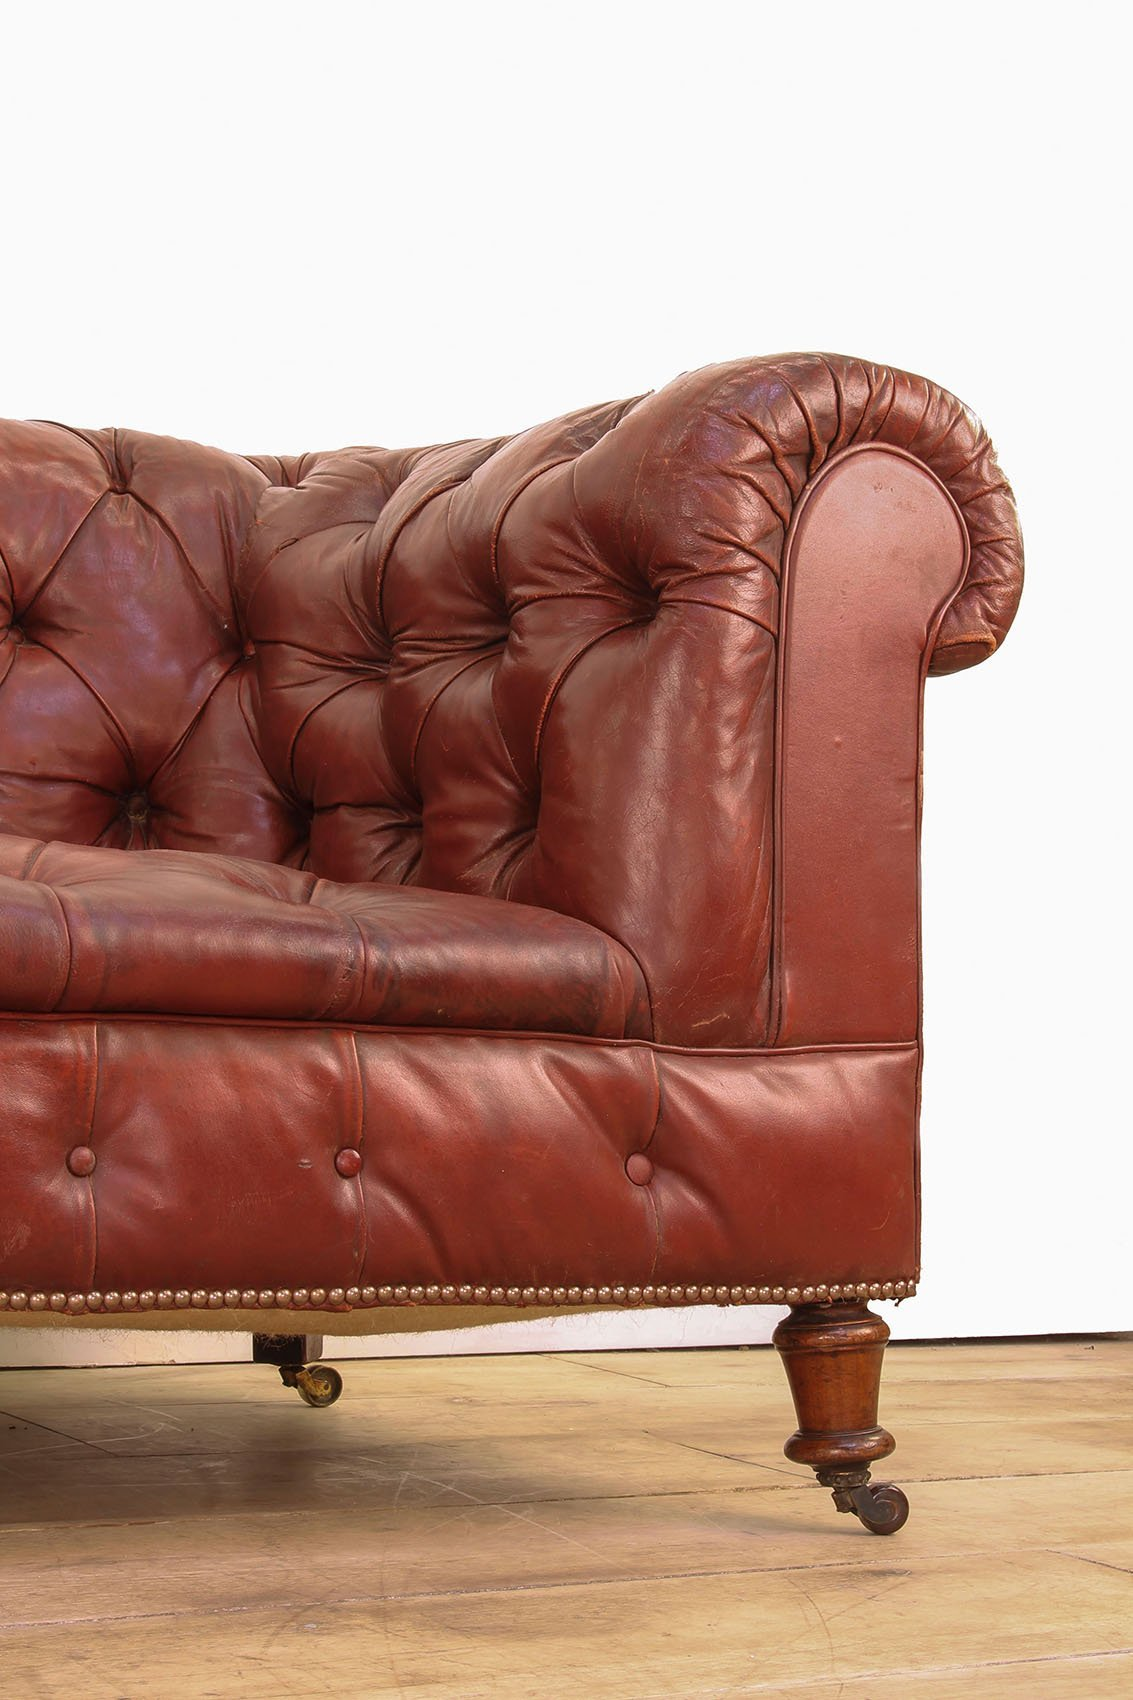 Victorian Red Leather Chesterfield Sofa Cooling Cooling